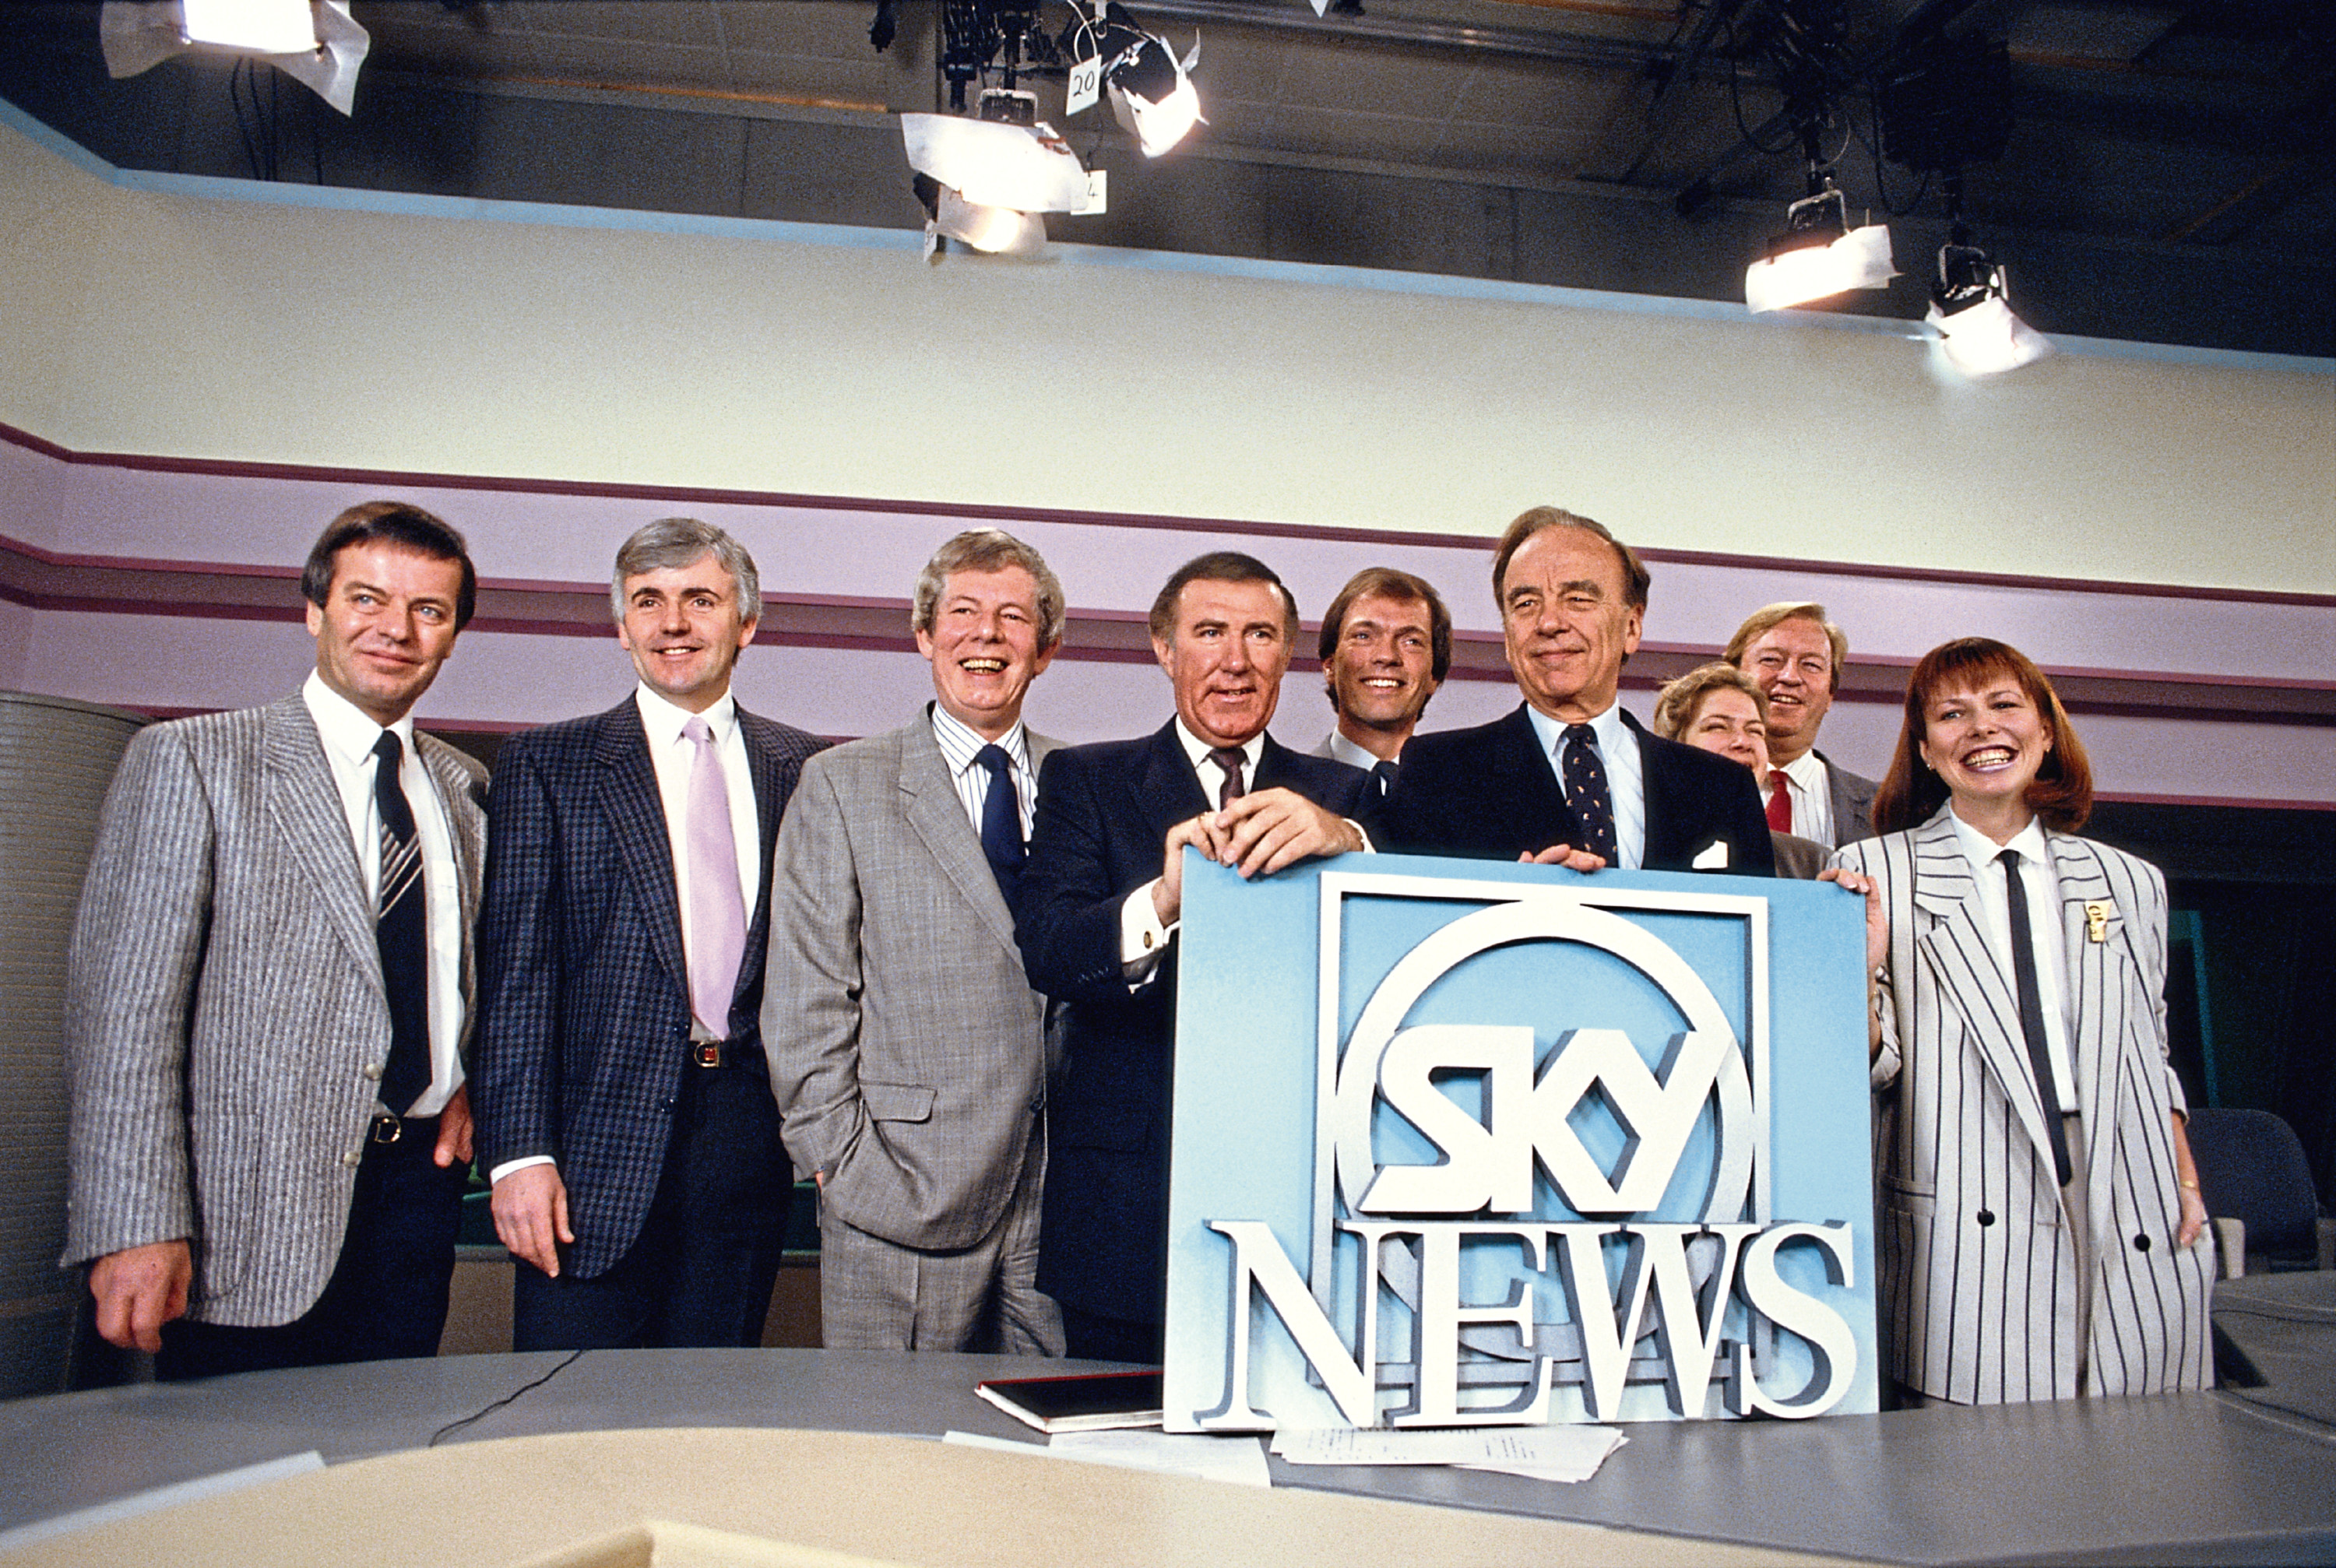 Media magnate Rupert Murdoch and broadcaster Andrew Neil at the launch of Sky TV in London, 5th February 1989. From left to right, Tony Blackburn, Peter Marshall, Derek Jameson, Neil, Alastair Yates, Murdoch, Penny Smith, Bob Friend and Kay Burley.  (Georges De Keerle/Getty Images)